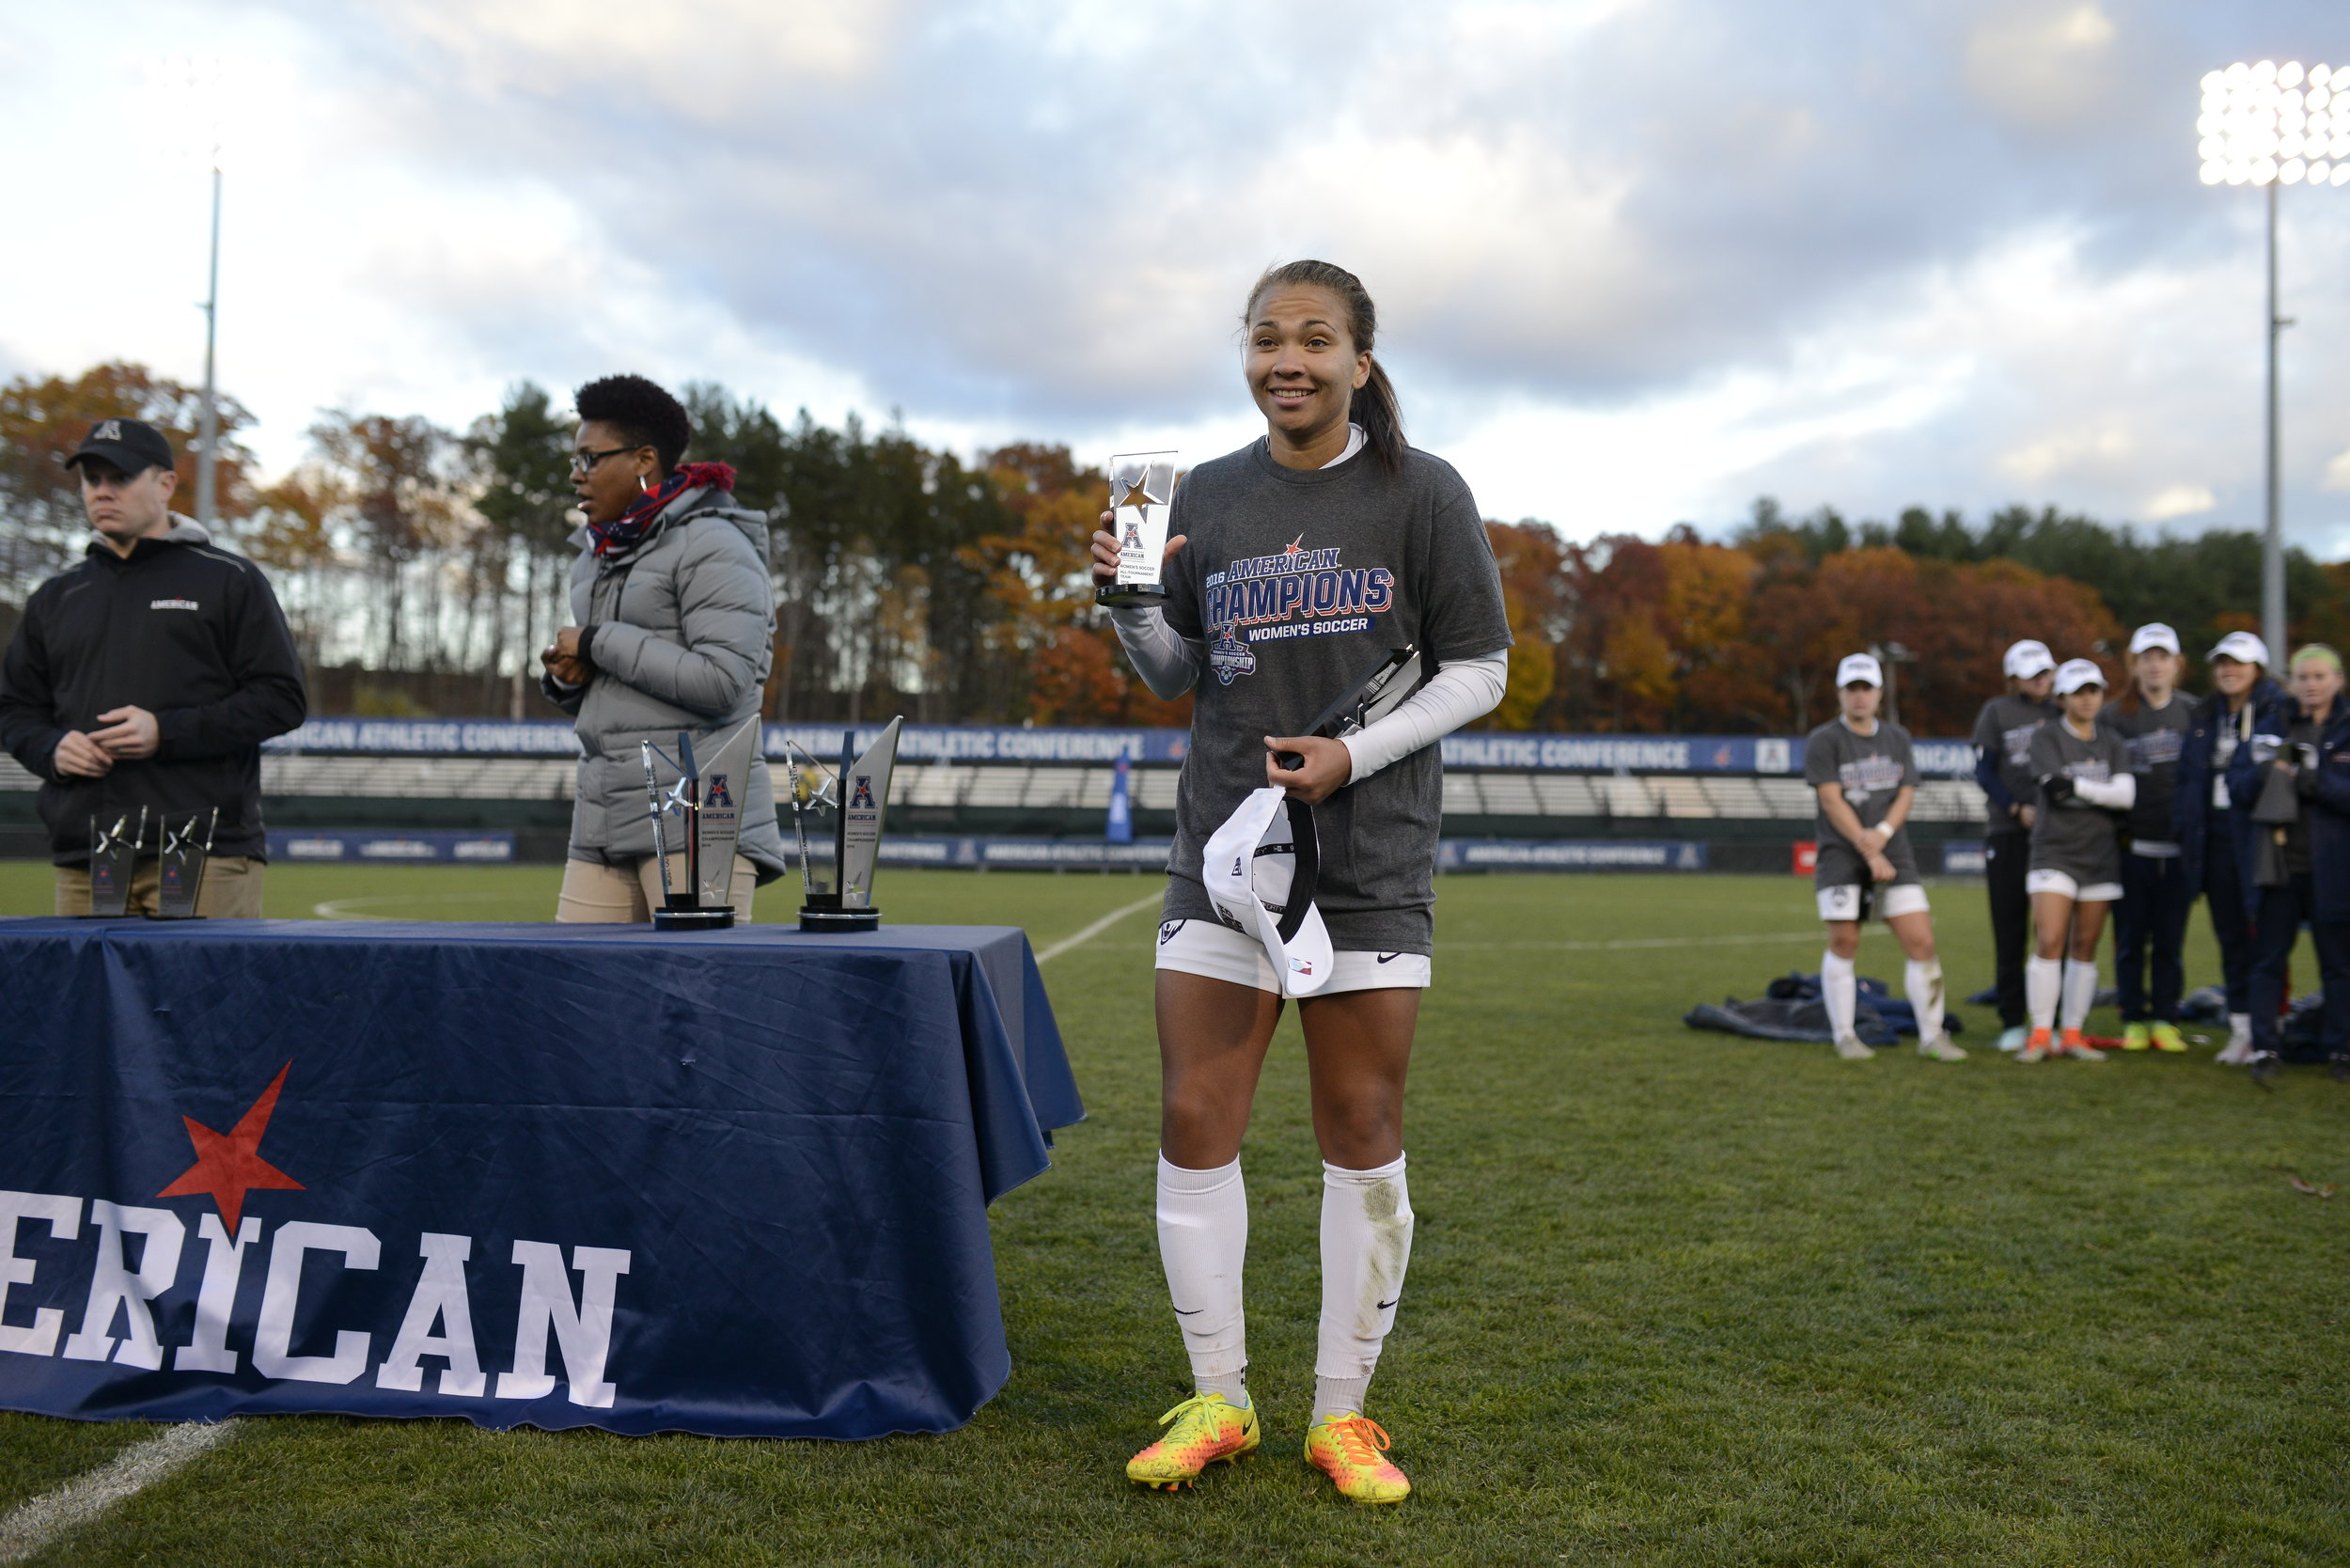 Senior defender Toriana Patterson poses with her trophy after being named the tournament's most outstanding defensive player on Sunday, Nov. 6 at Joseph J. Morrone Stadium. Patterson helped lead the Huskies to a 1-0 victory over SMU to win the American Athletic Conference title. (Jason Jiang/The Daily Campus)